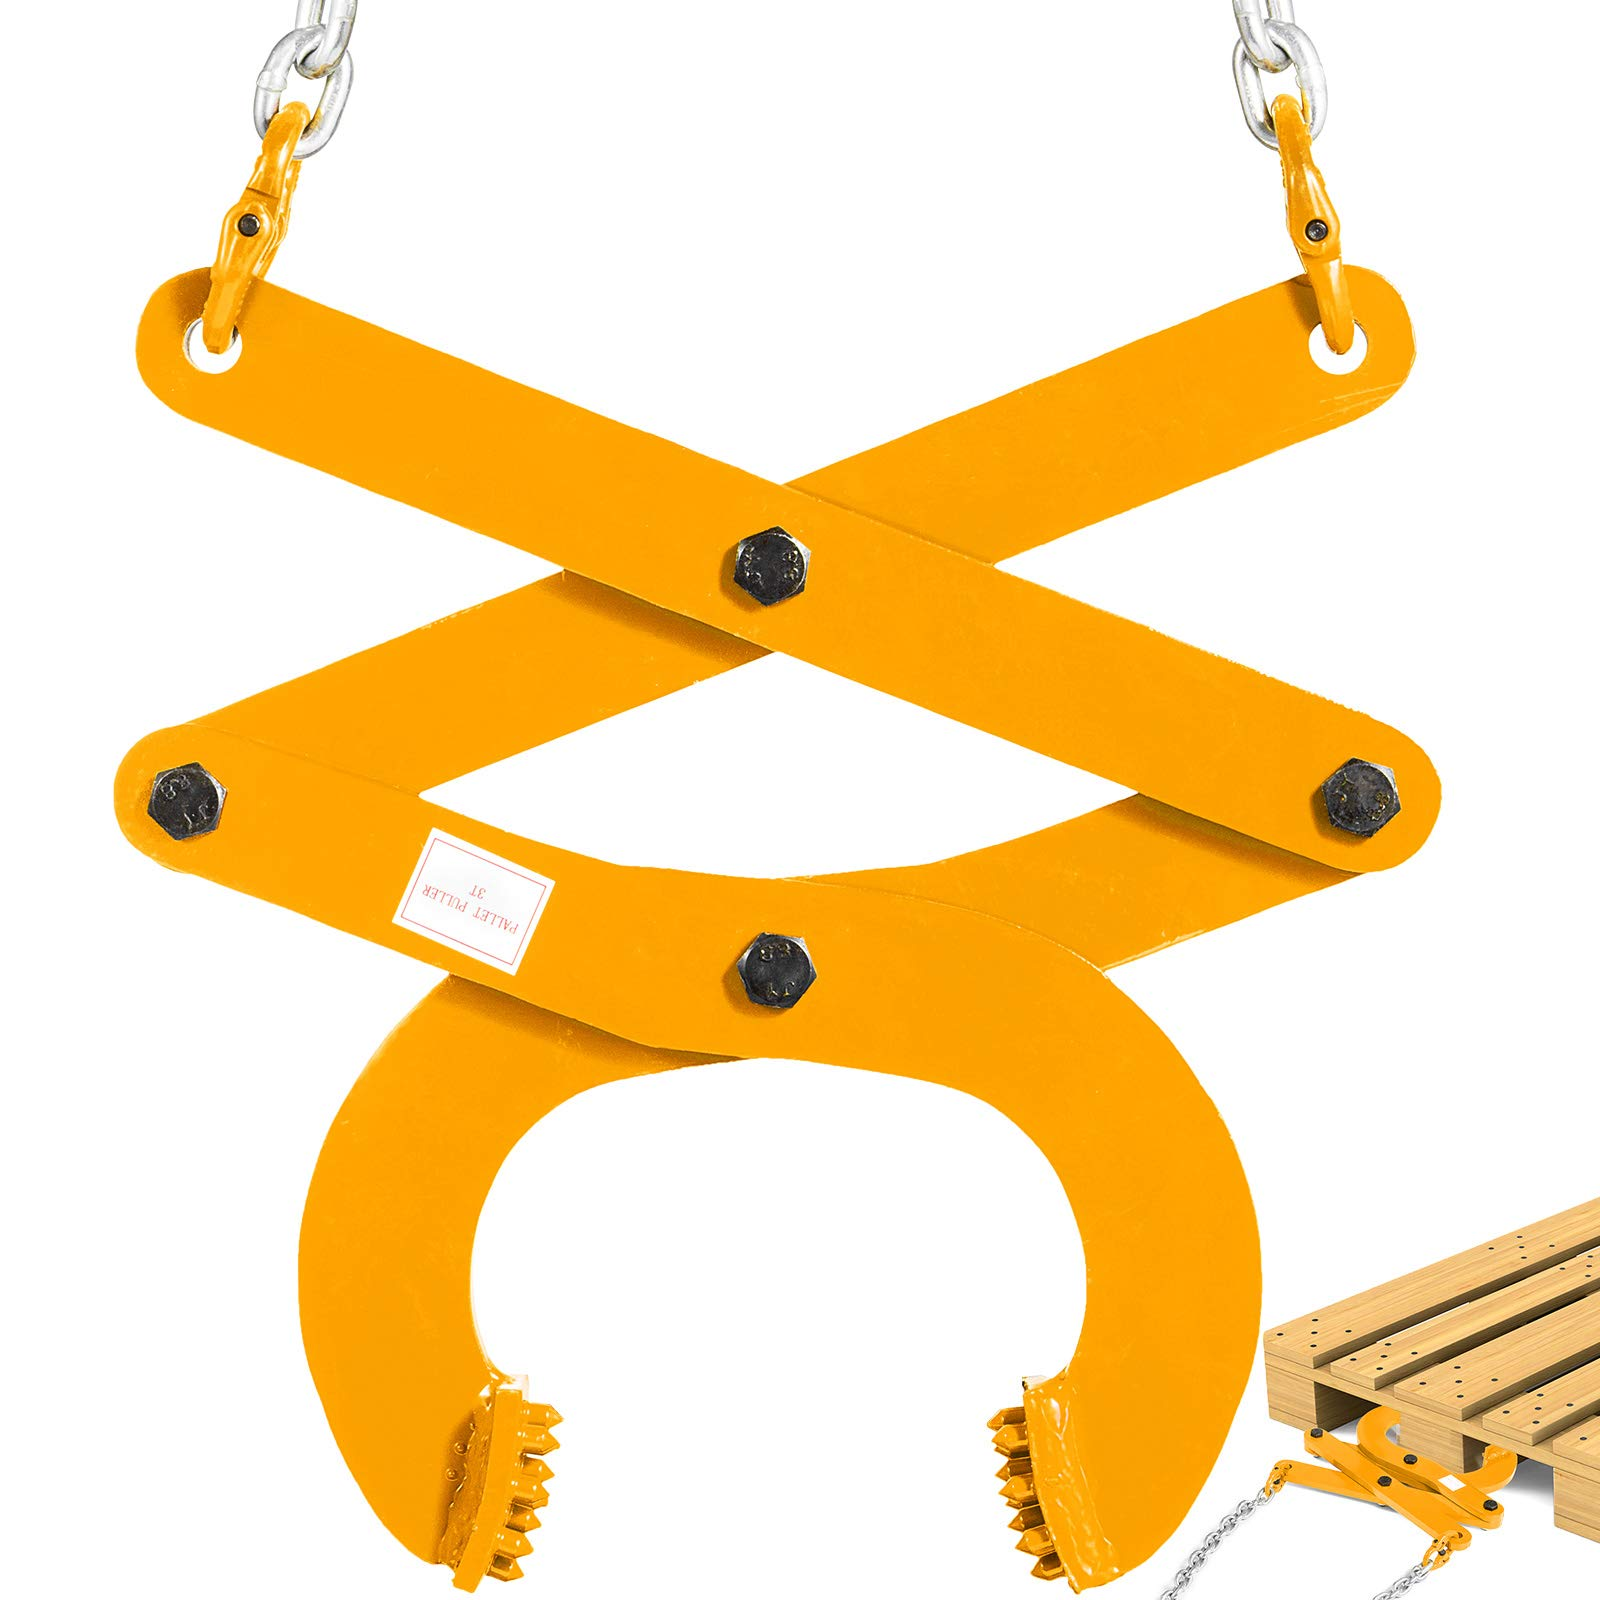 BestEquip 3T Pallet Puller Steel Double Scissor Yellow Pallet Puller Clamp 6614 LBS Capacity 6.3 Inch Jaw Opening x 0.5 Inch Jaw Height with 8 Inch Chain